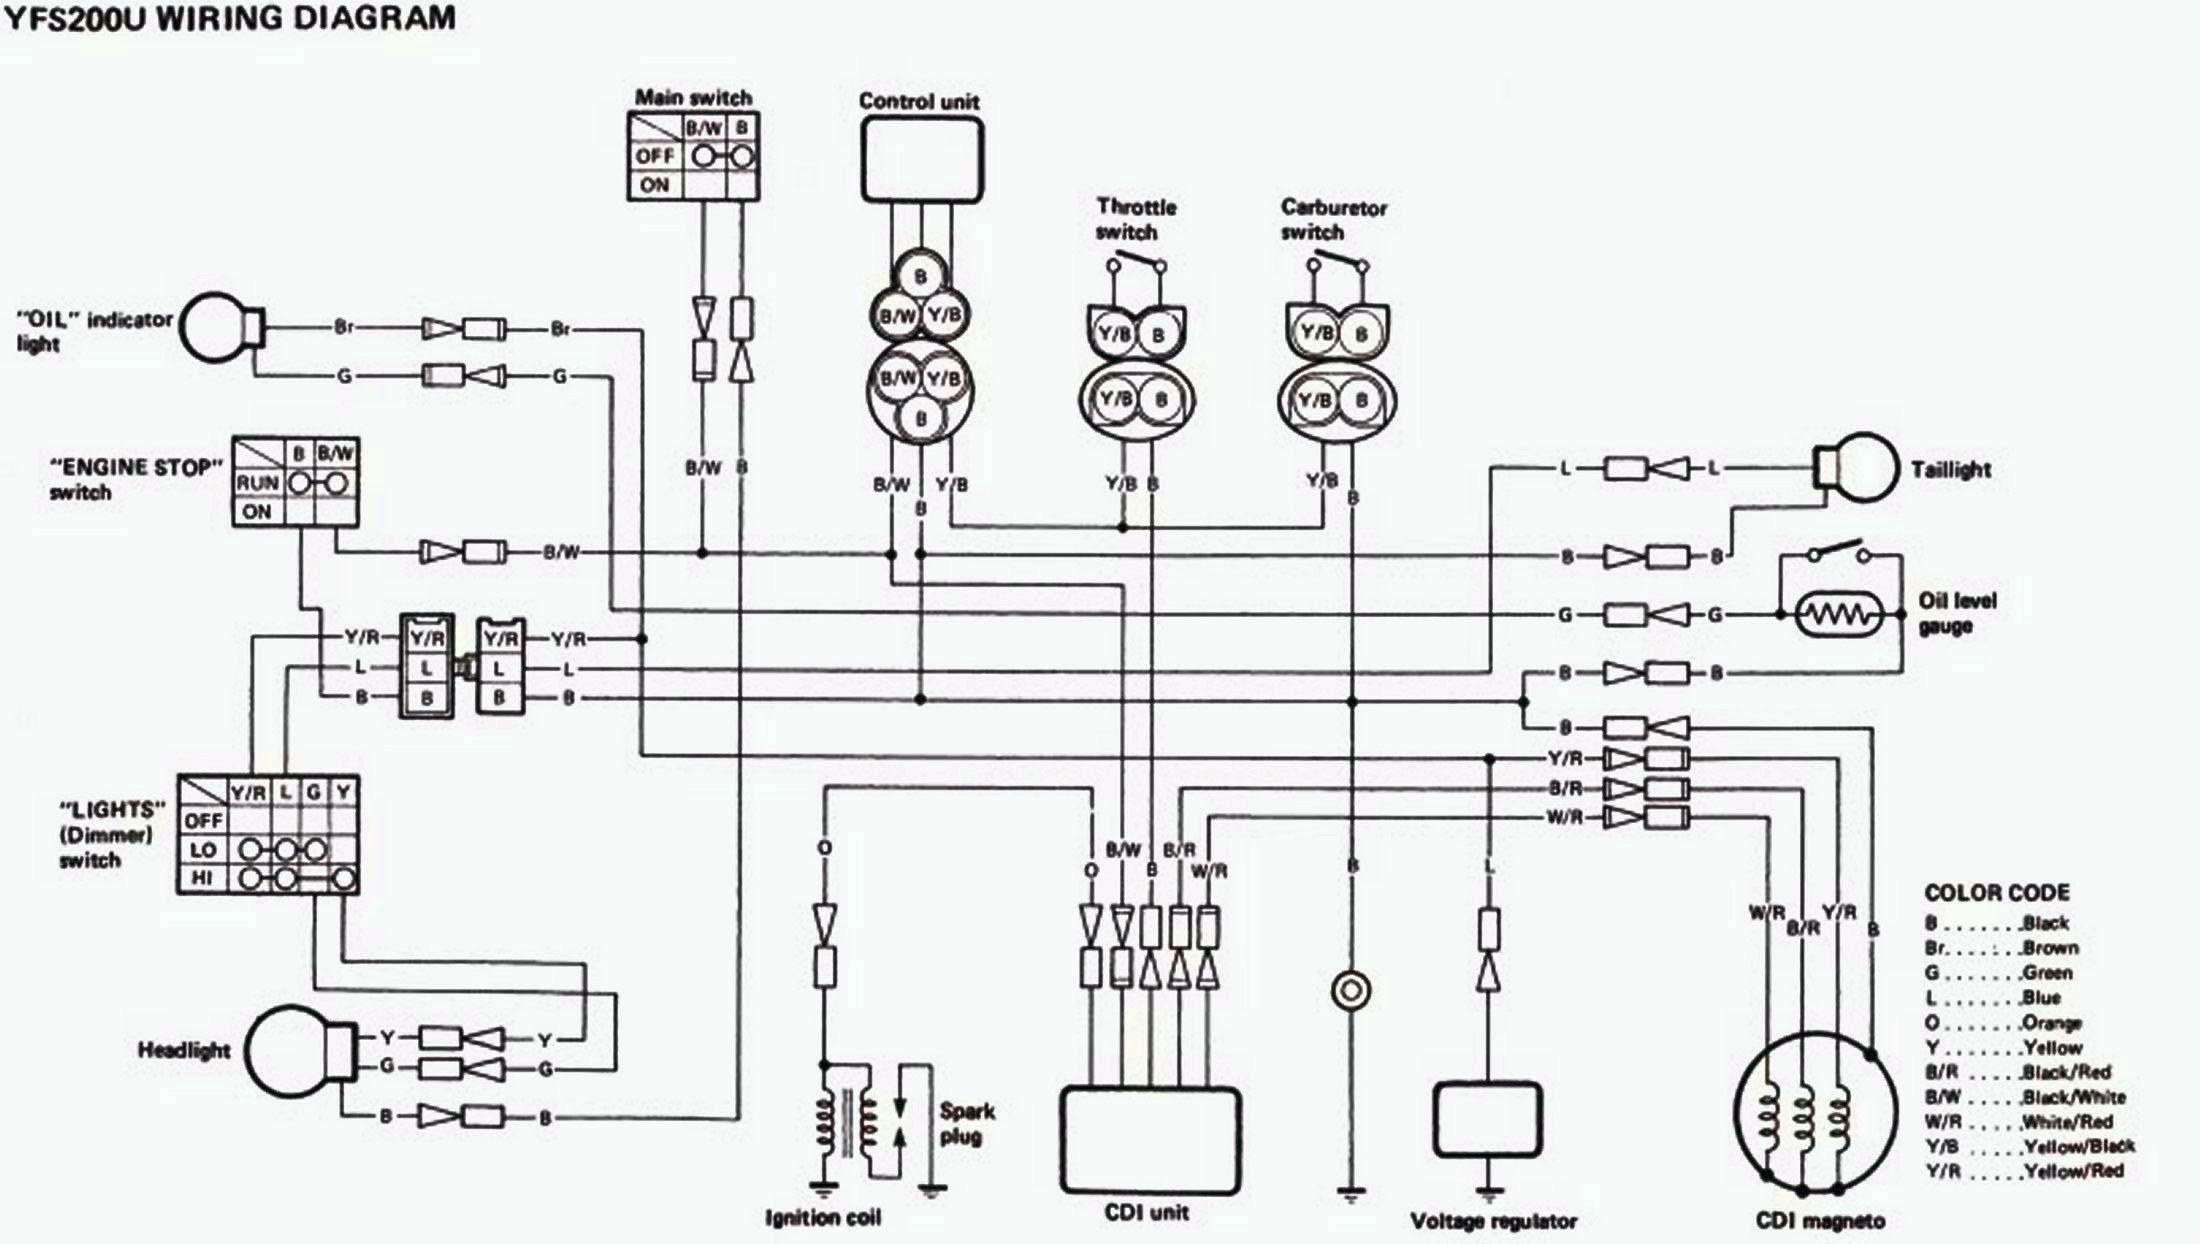 stator wire diagram dicktator wiring diagram wiring diagram and hernes dc stator wiring diagram auto schematic